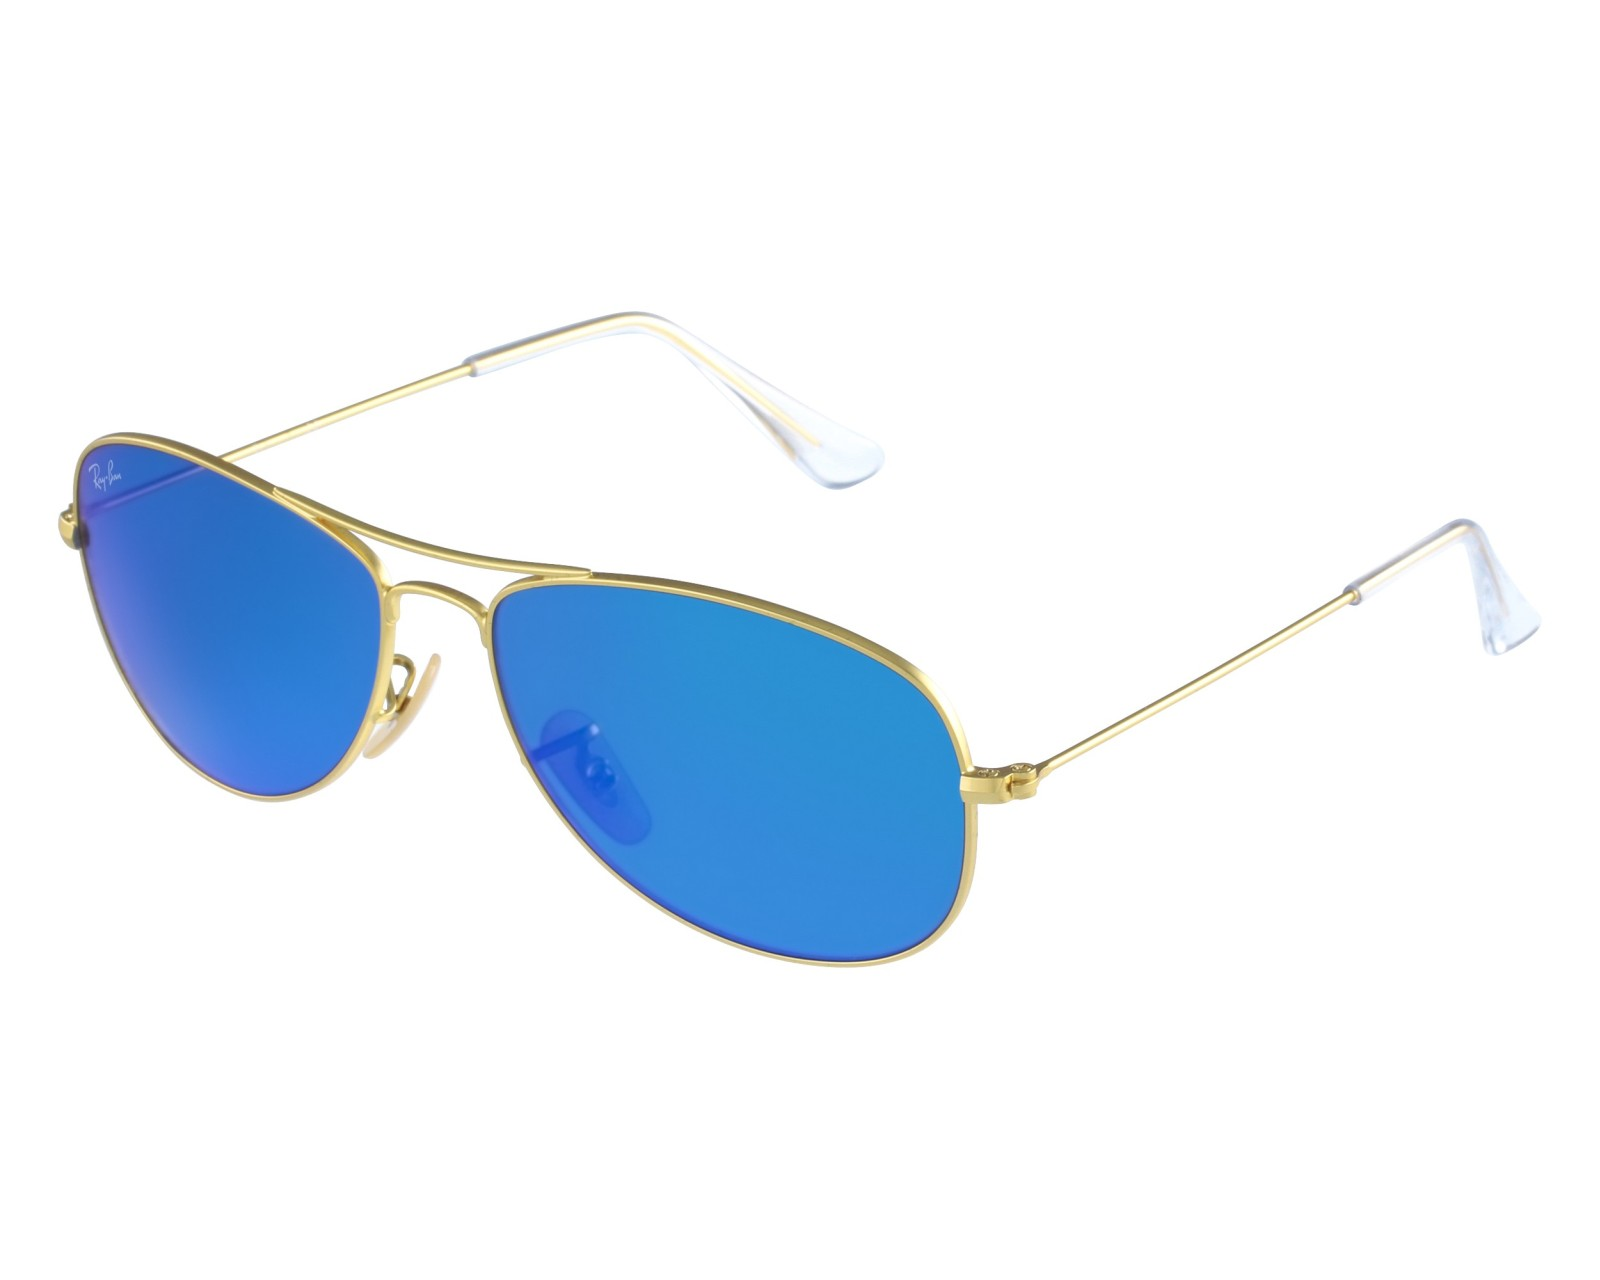 378b42c5d2 thumbnail Sunglasses Ray-Ban RB-3362 112 17 - Gold front view